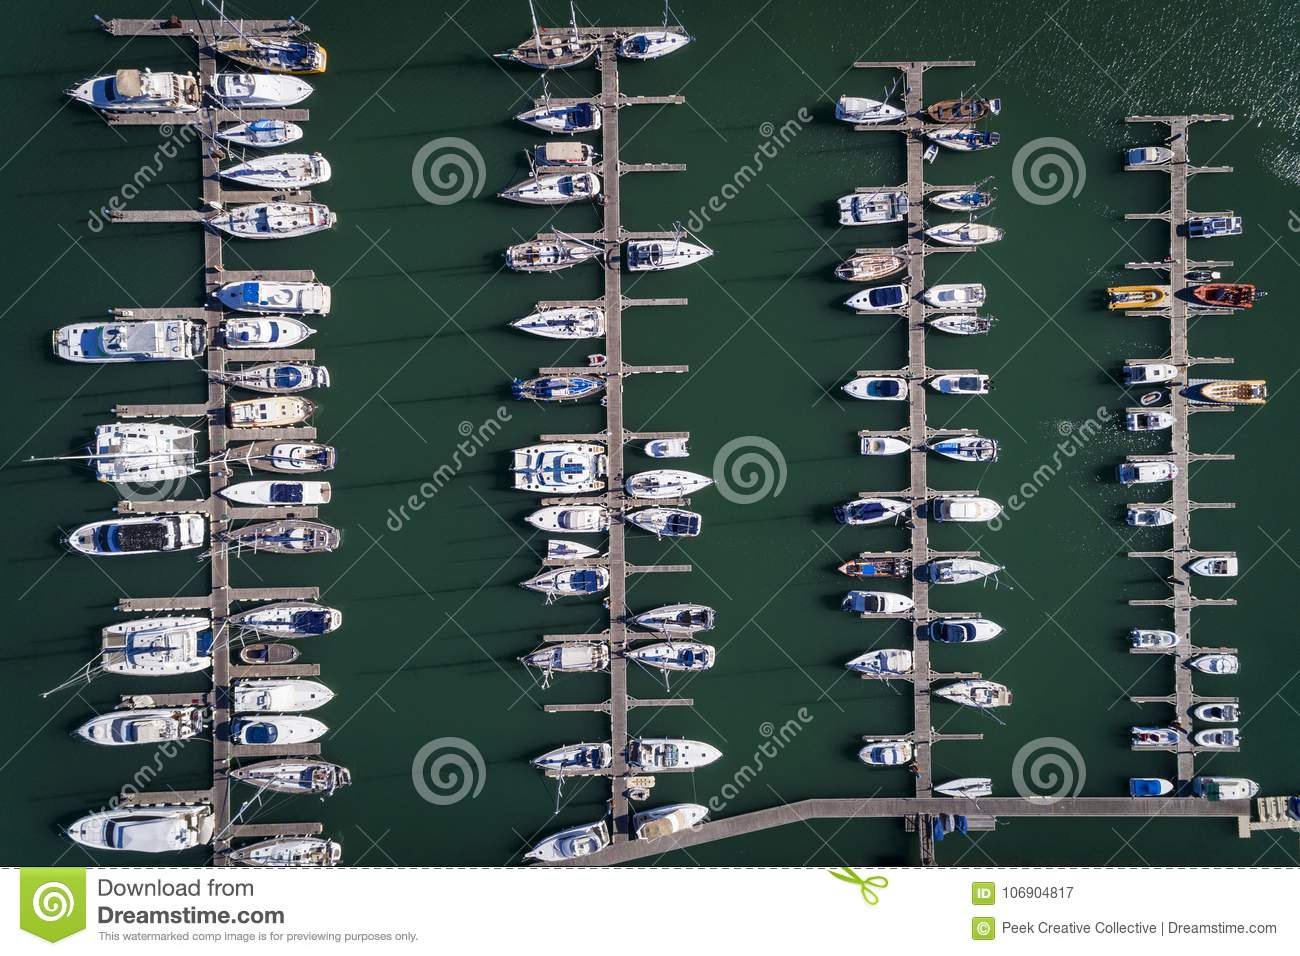 Aerial view of sail boats docked in a Marina in Portimao, Algarve